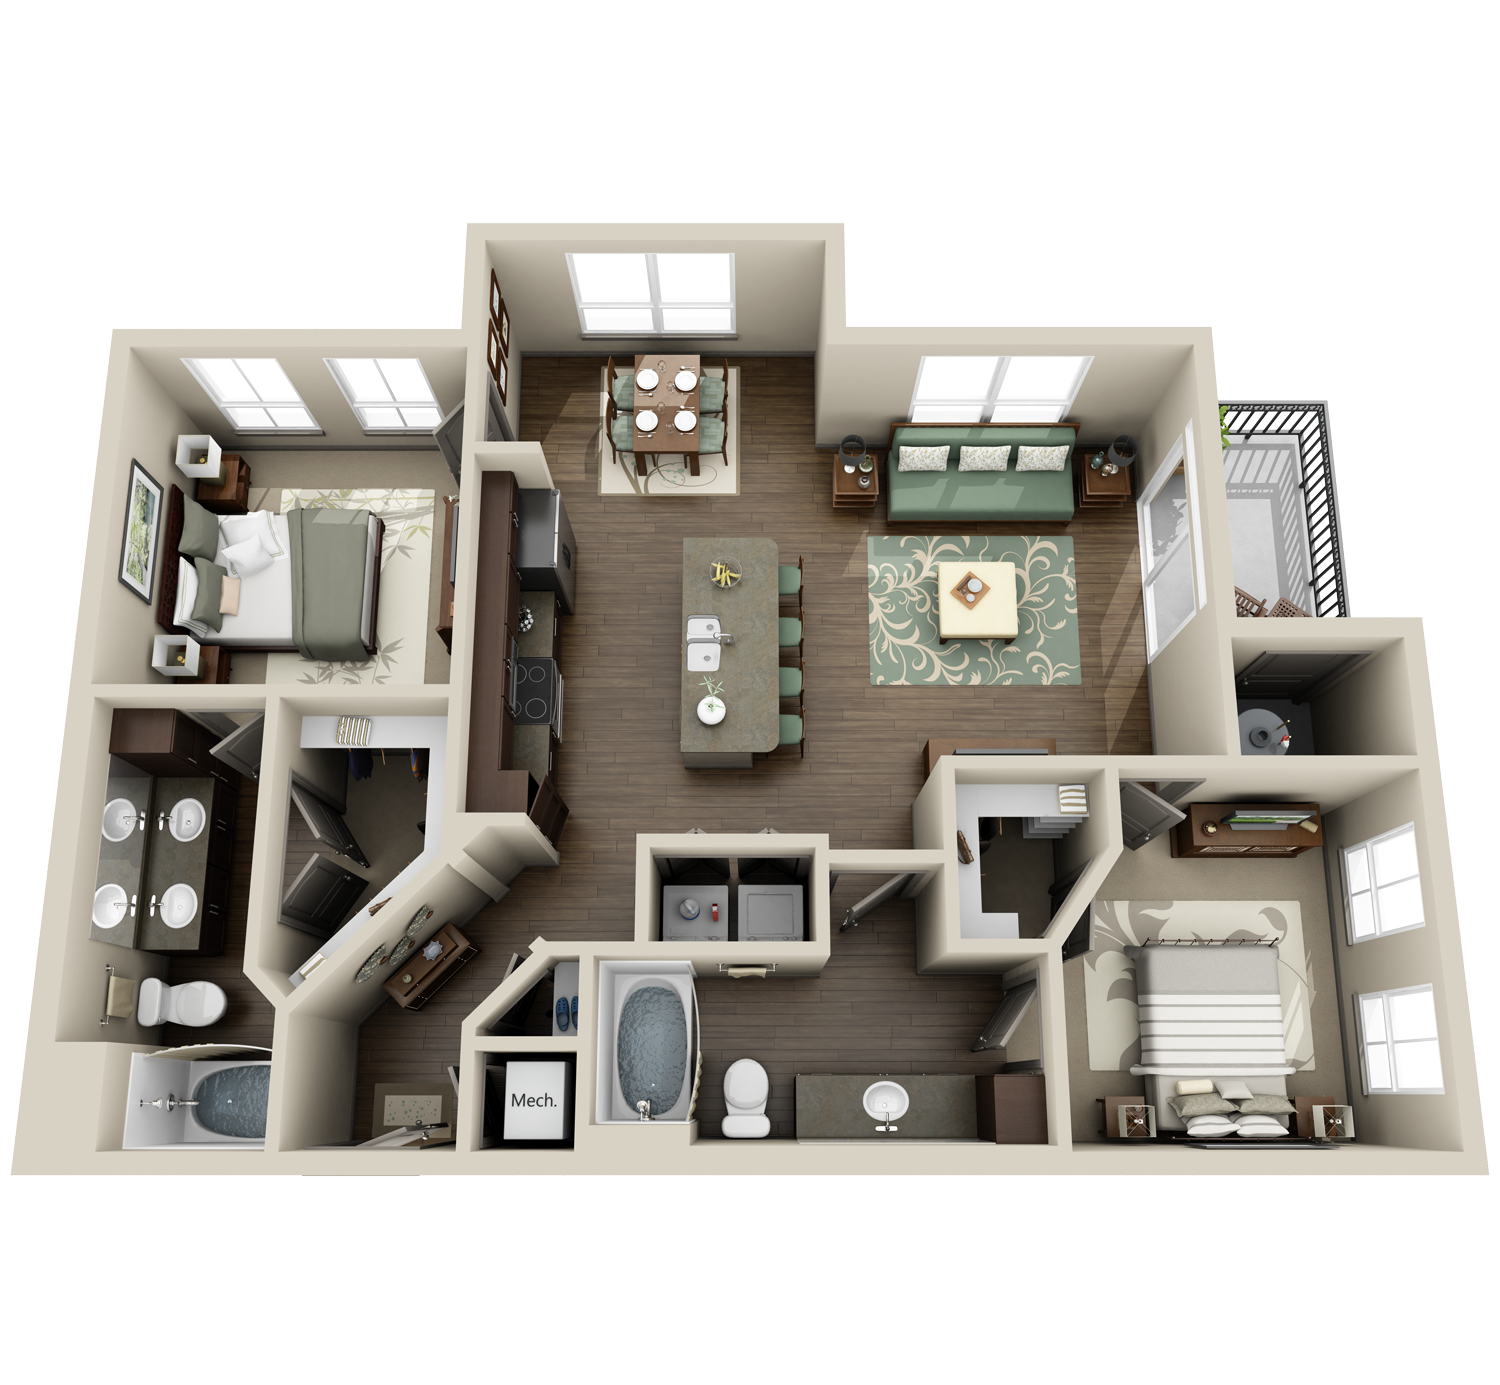 B2 floor plan featuring 2 bedrooms and 2 baths